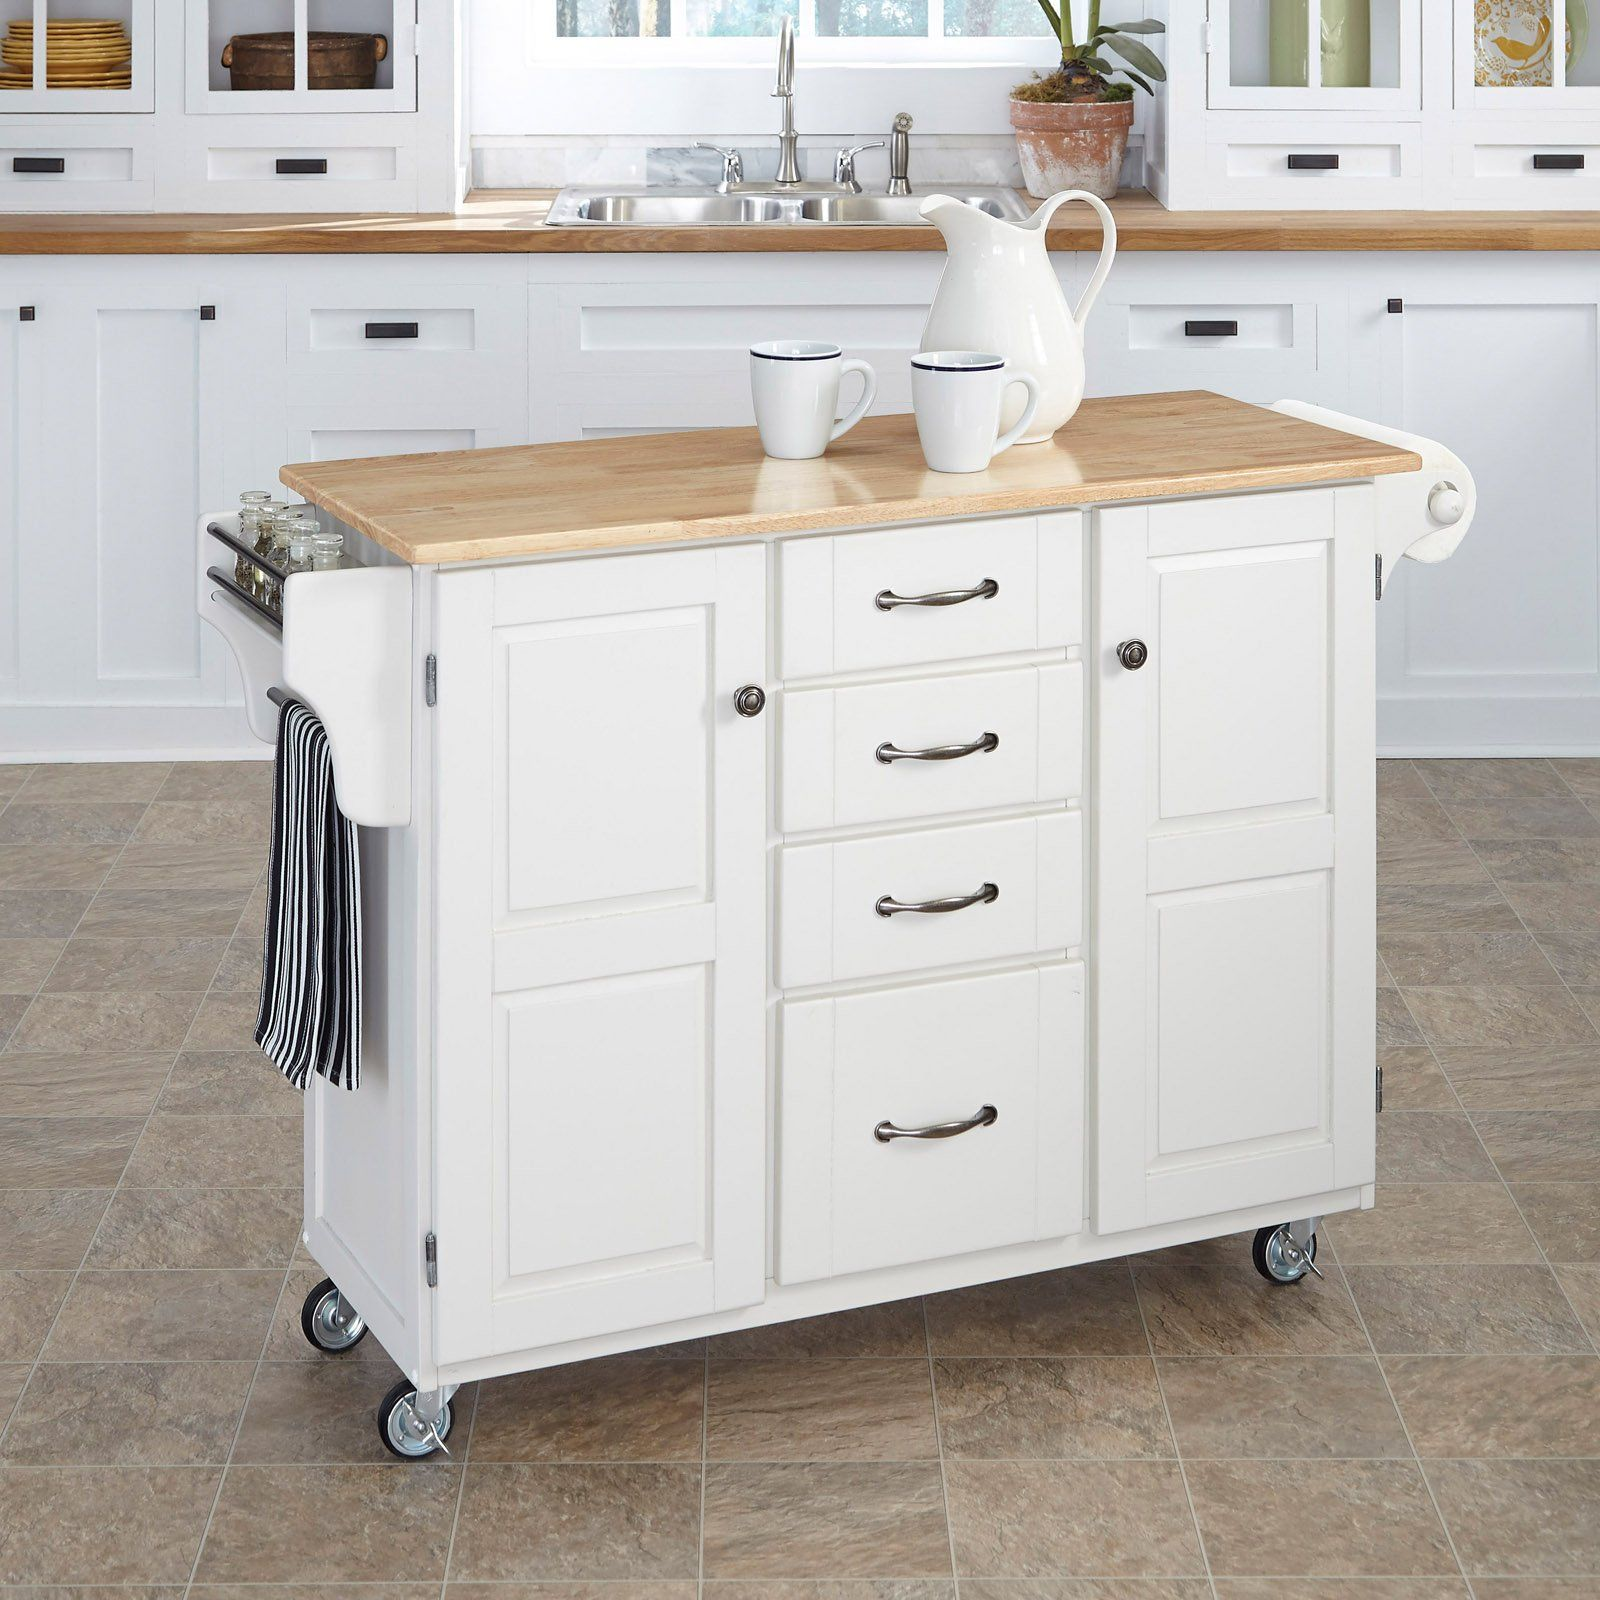 Home Styles Design Your Own Kitchen Island   $360.65 @hayneedle